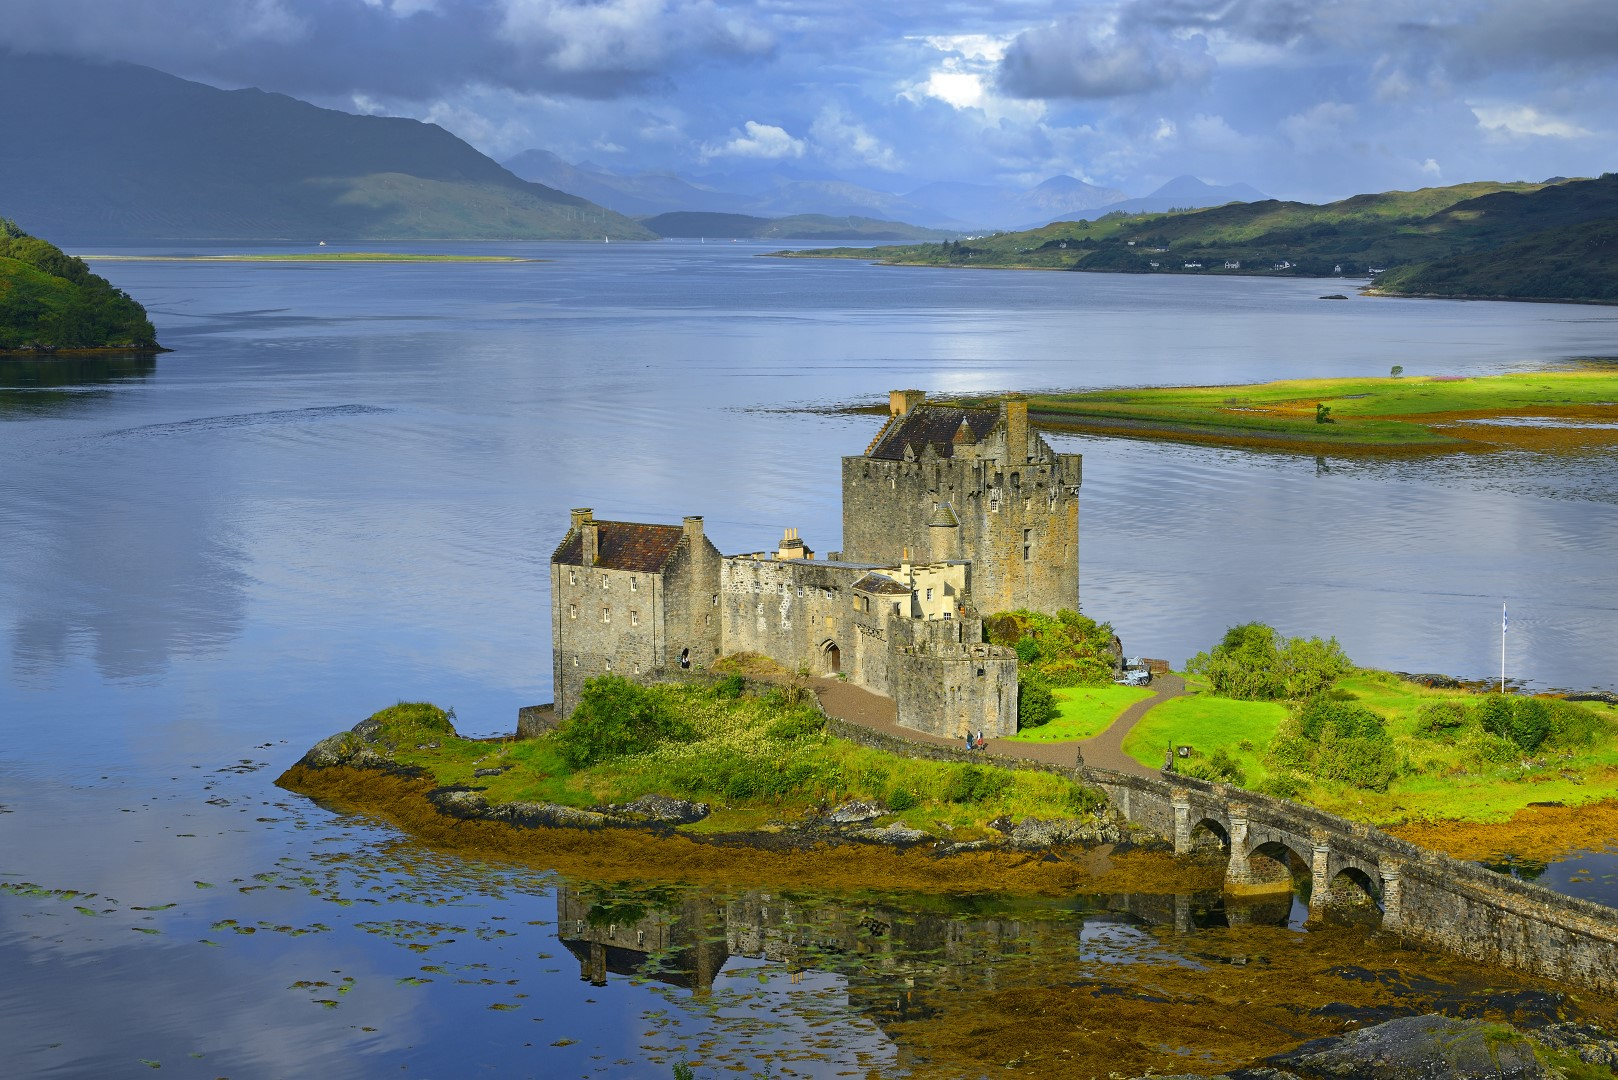 The Iconic Eilean Doonan Castle by Kyle of Lochaish